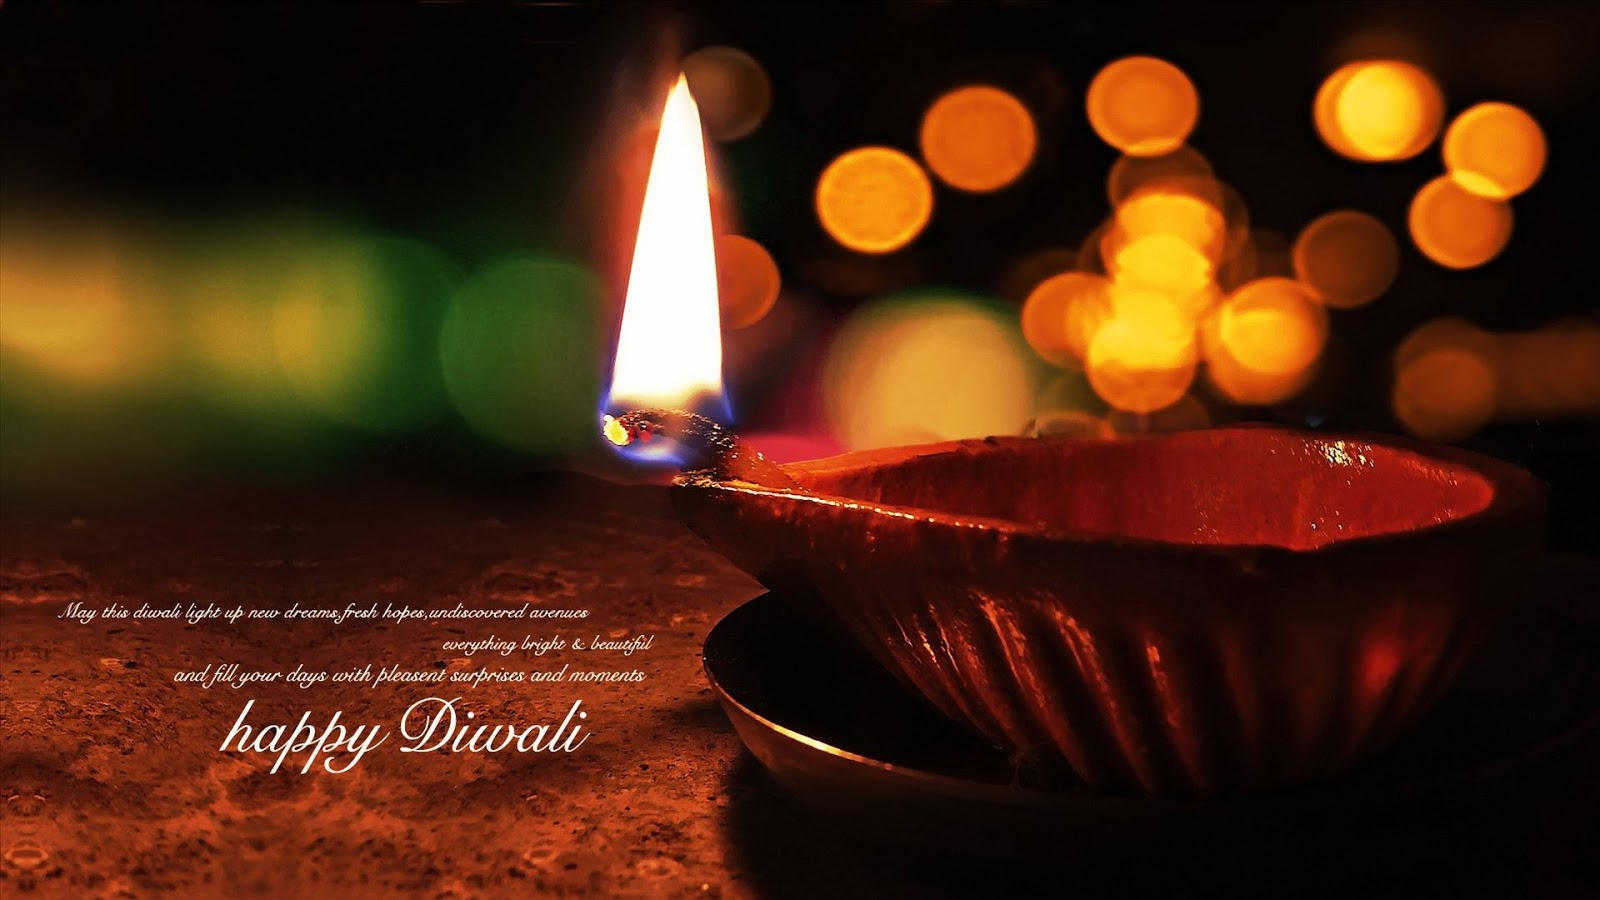 Happy Diwali 2017: Pictures, wallpapers, Images in HD